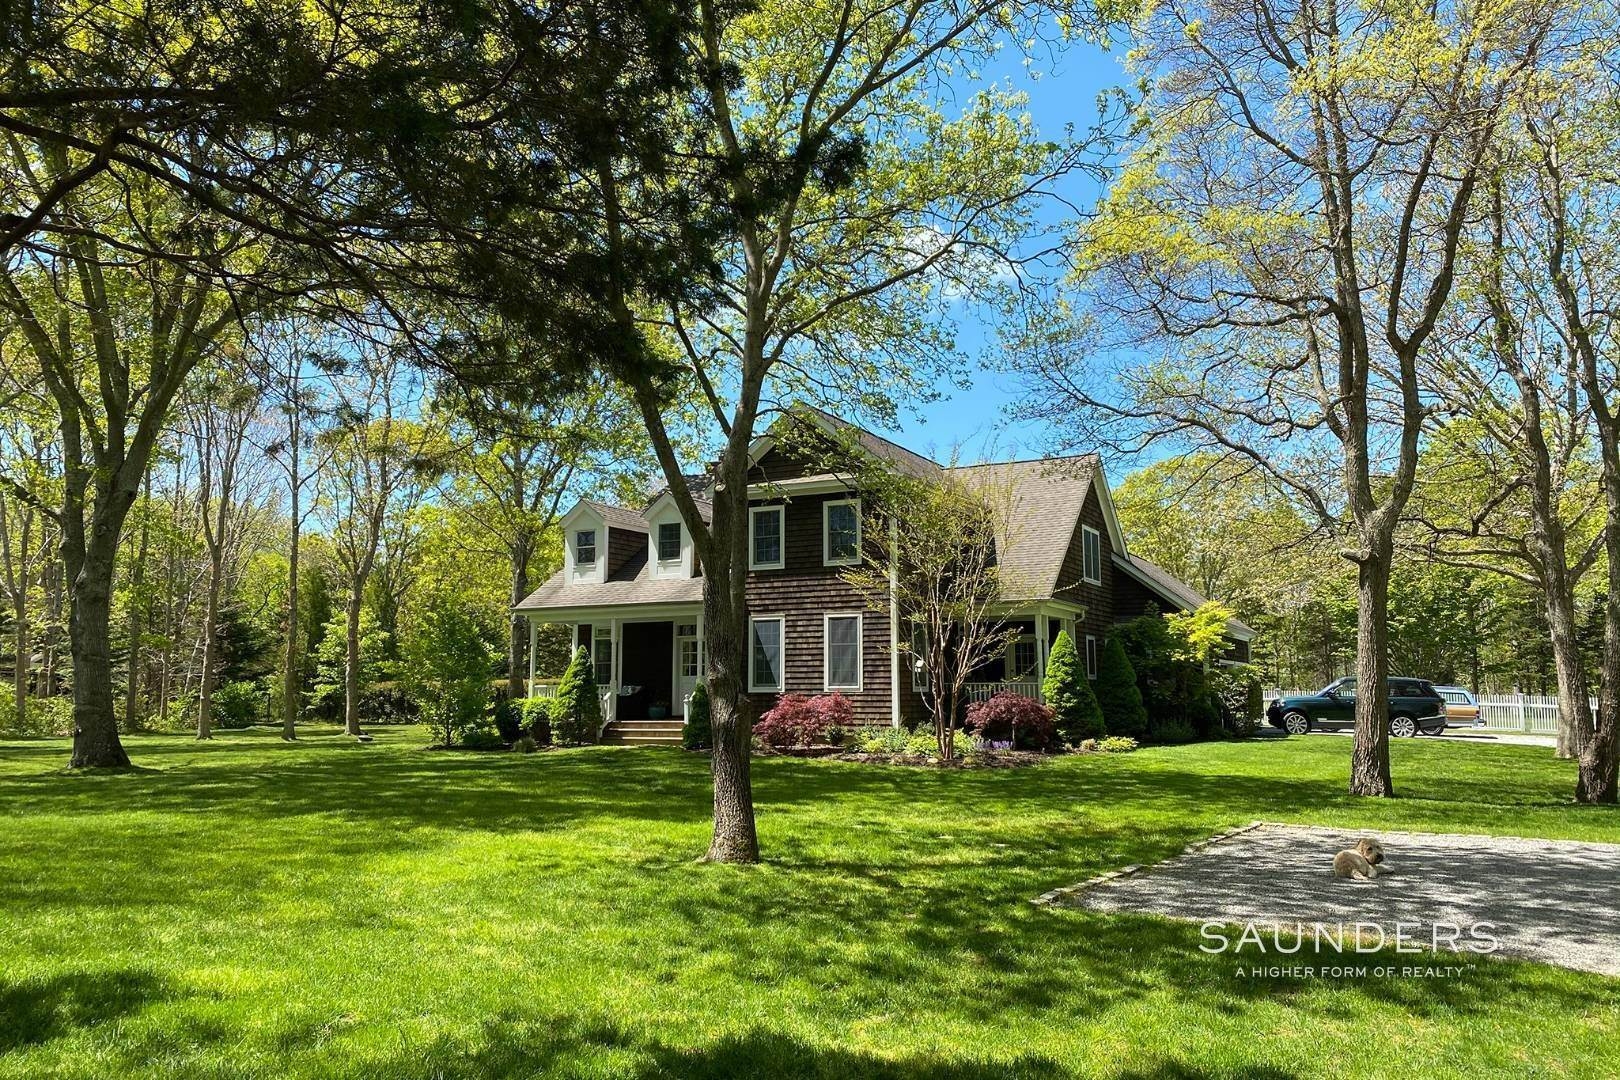 Single Family Homes at 100 Greenleaf Lane Sagaponack Village, Southampton Town, NY 11962